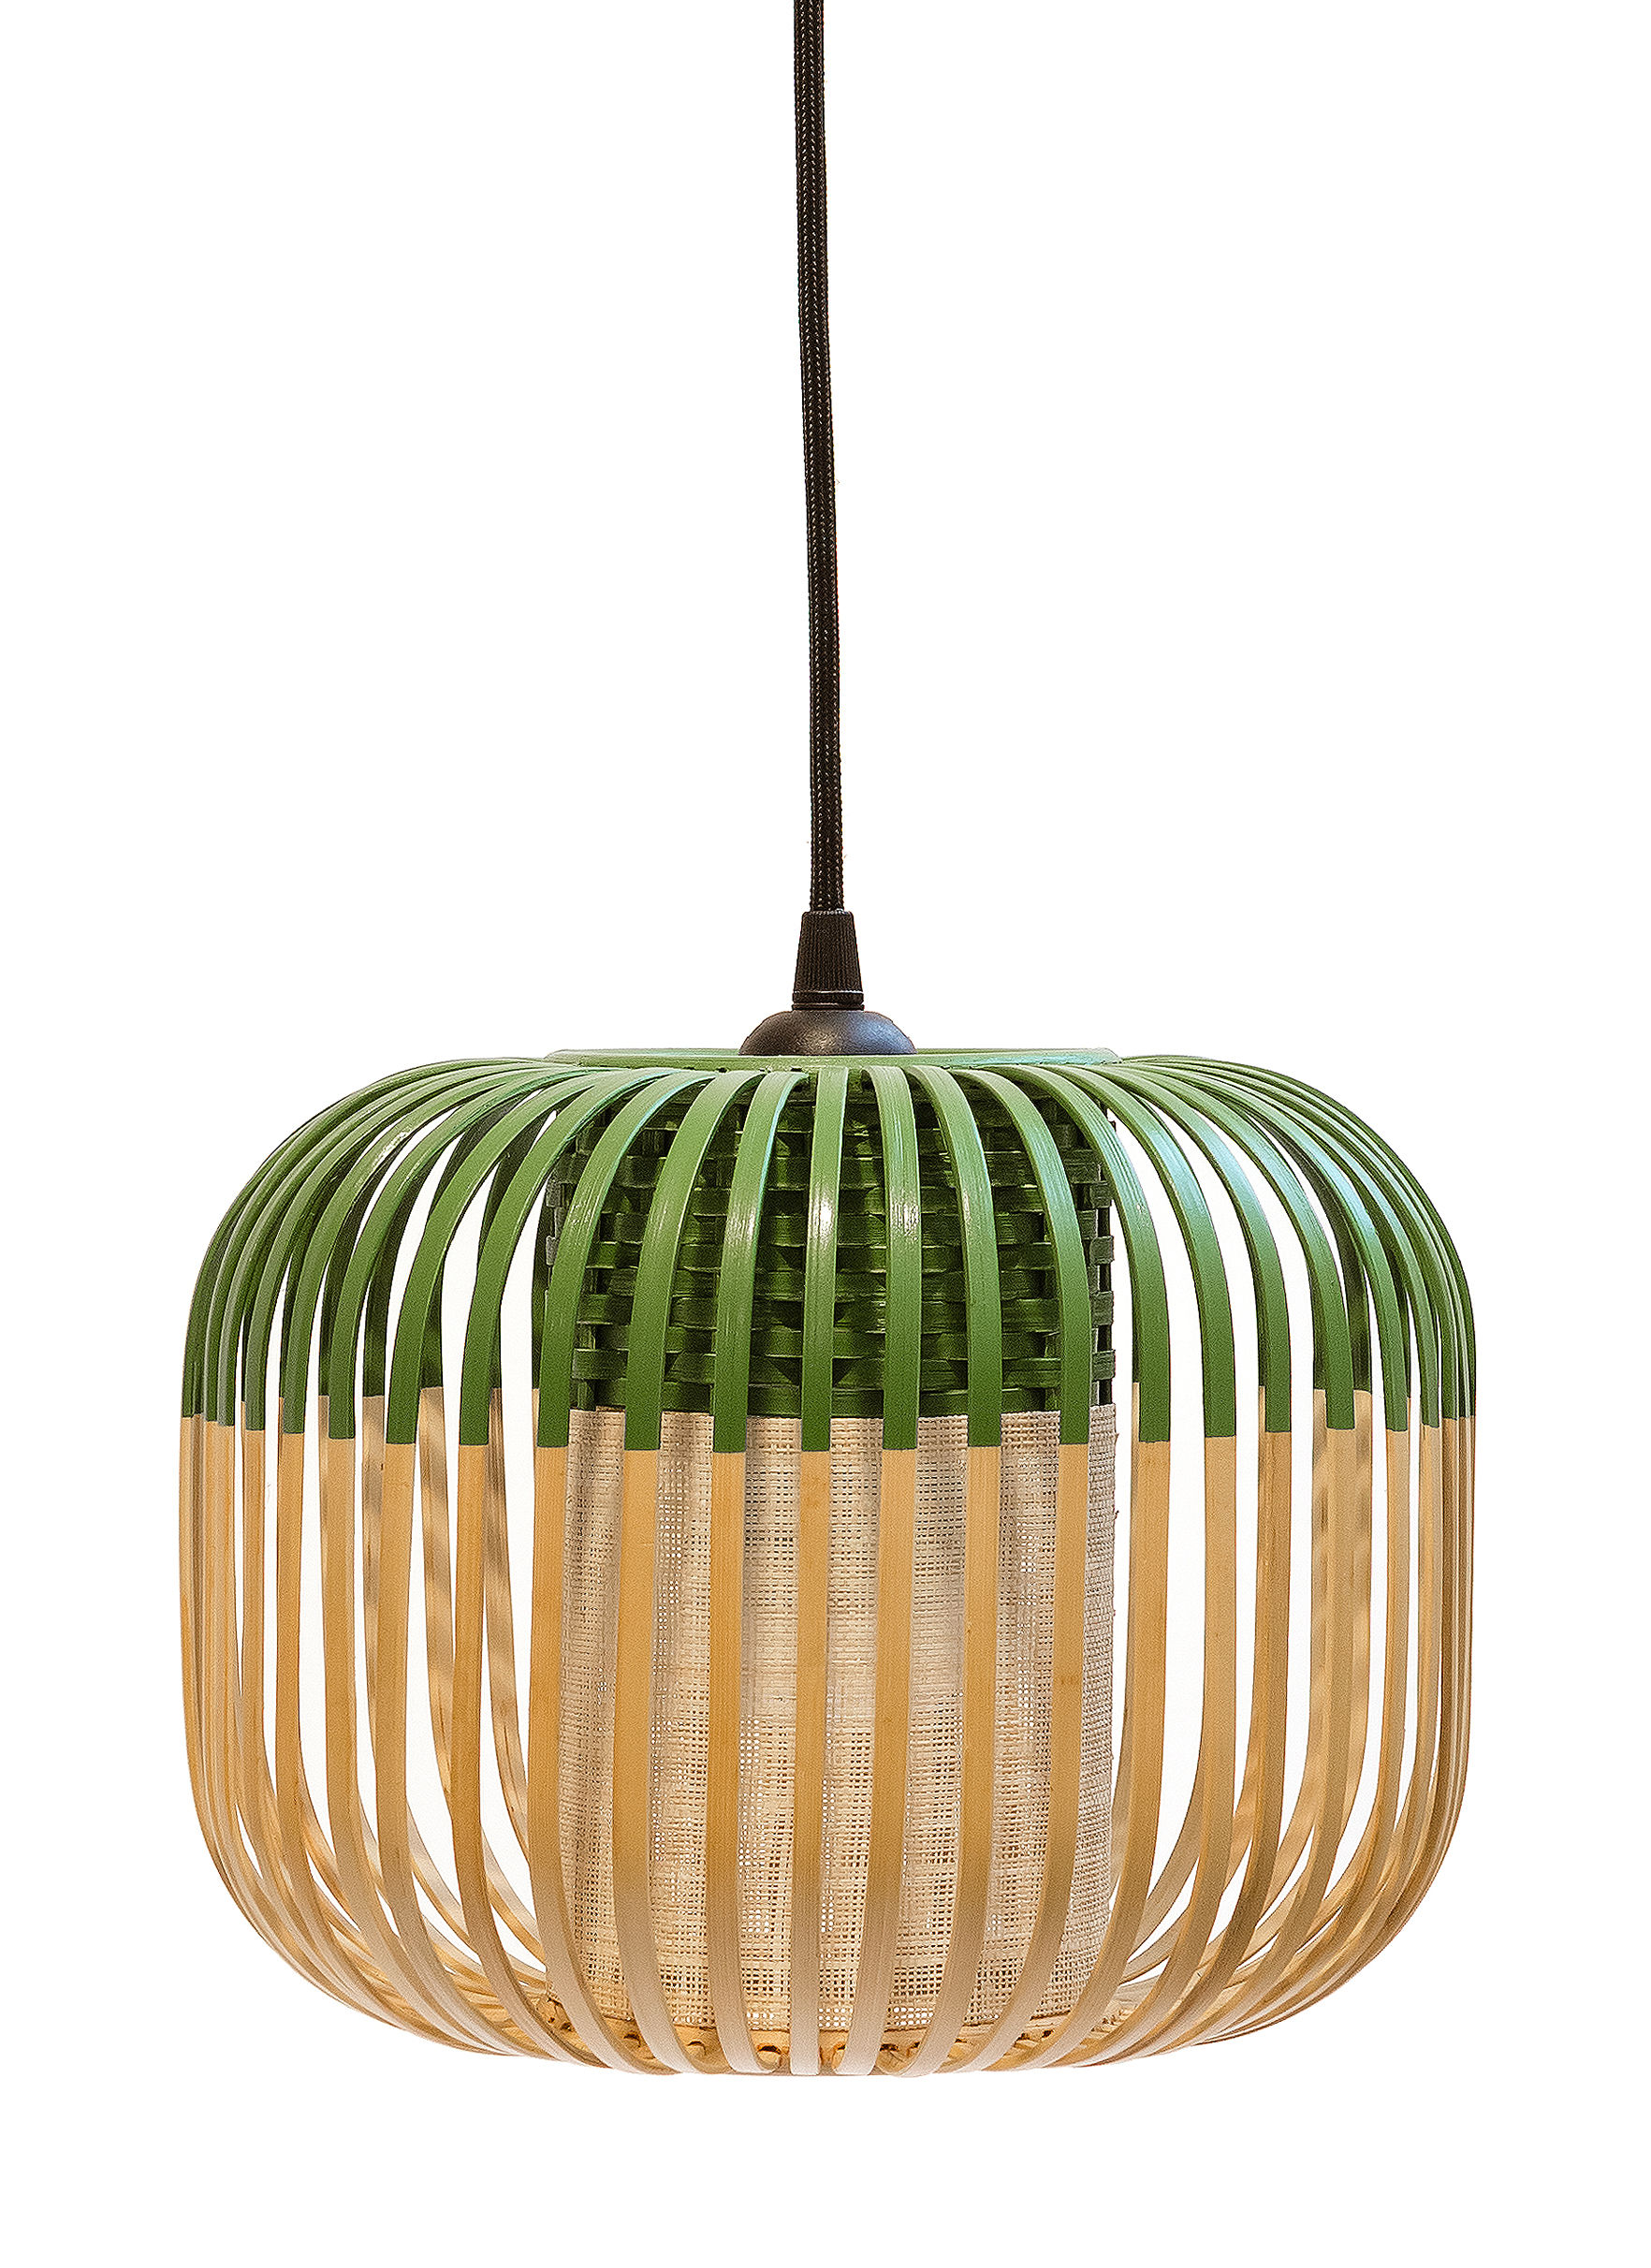 Lighting - Pendant Lighting - Bamboo Light XS Outdoor Pendant - H 20 x Ø 27 cm by Forestier - Green / Natural - Natural bamboo, Rubber